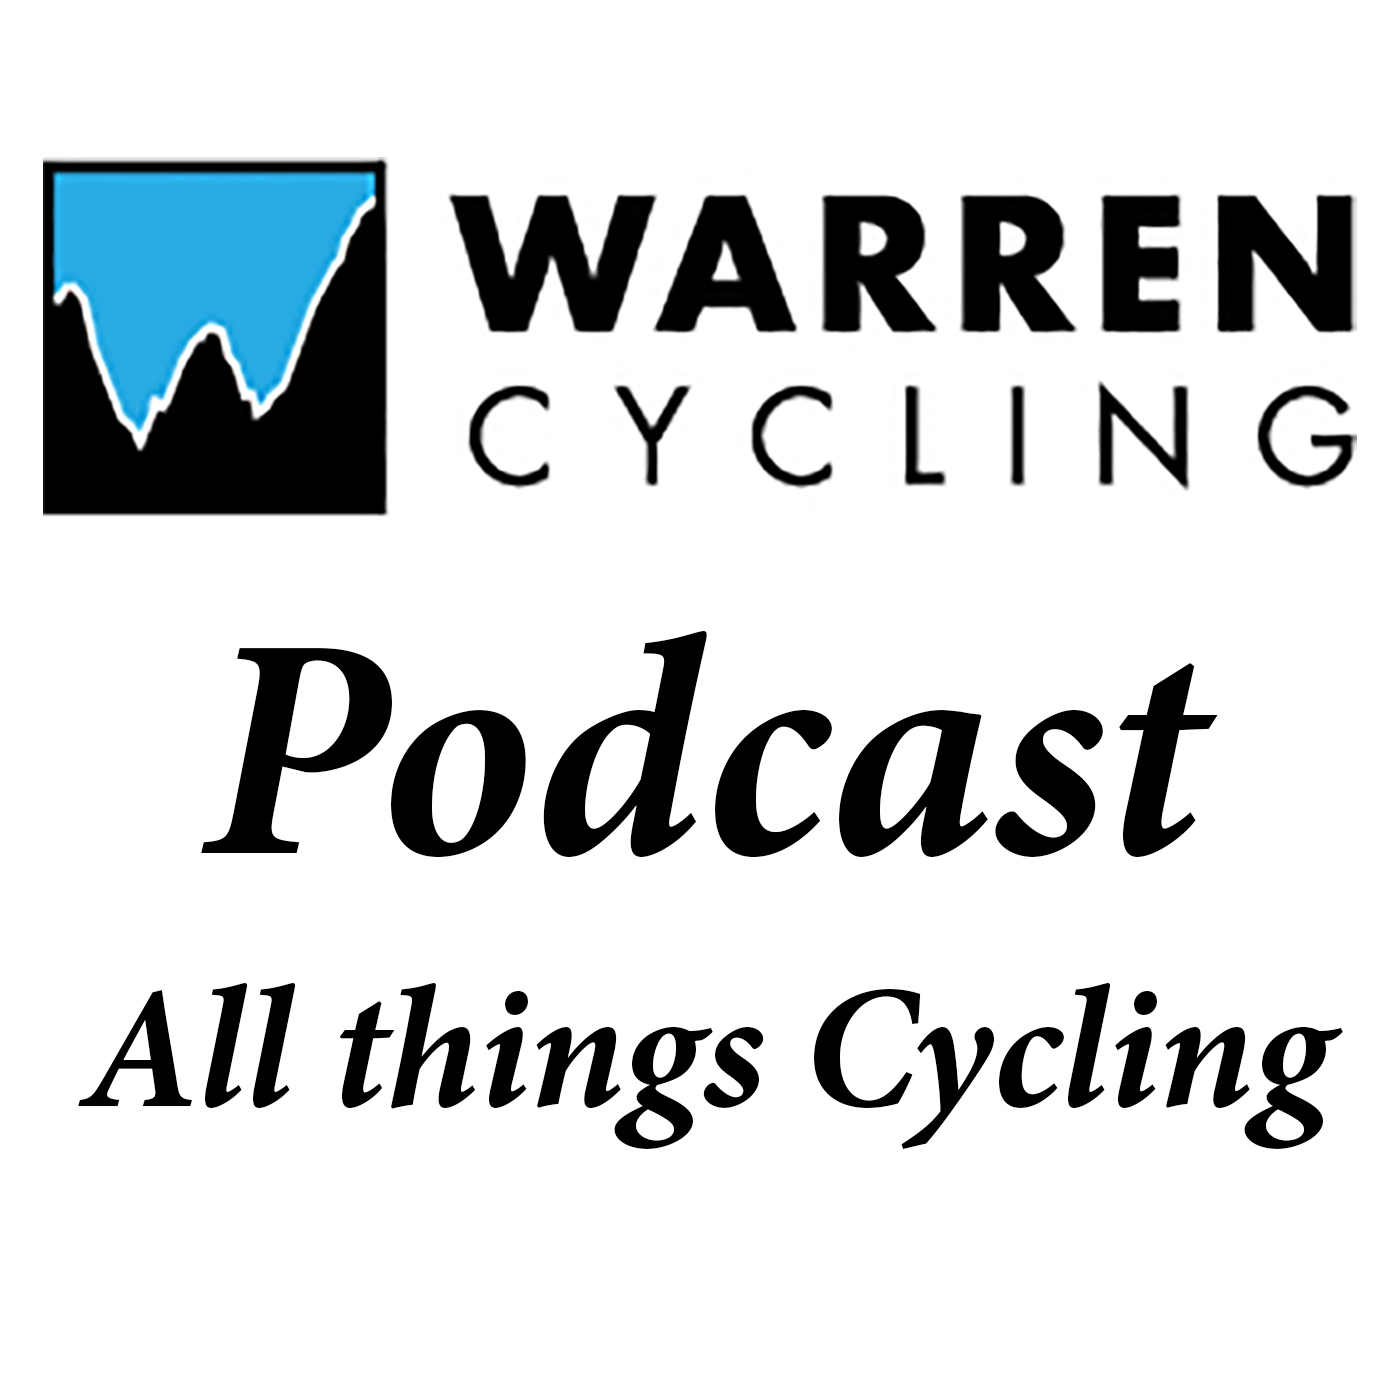 Warren Cycling Podcast Episode 244: Racing in Italy, Spain and Belgium show art